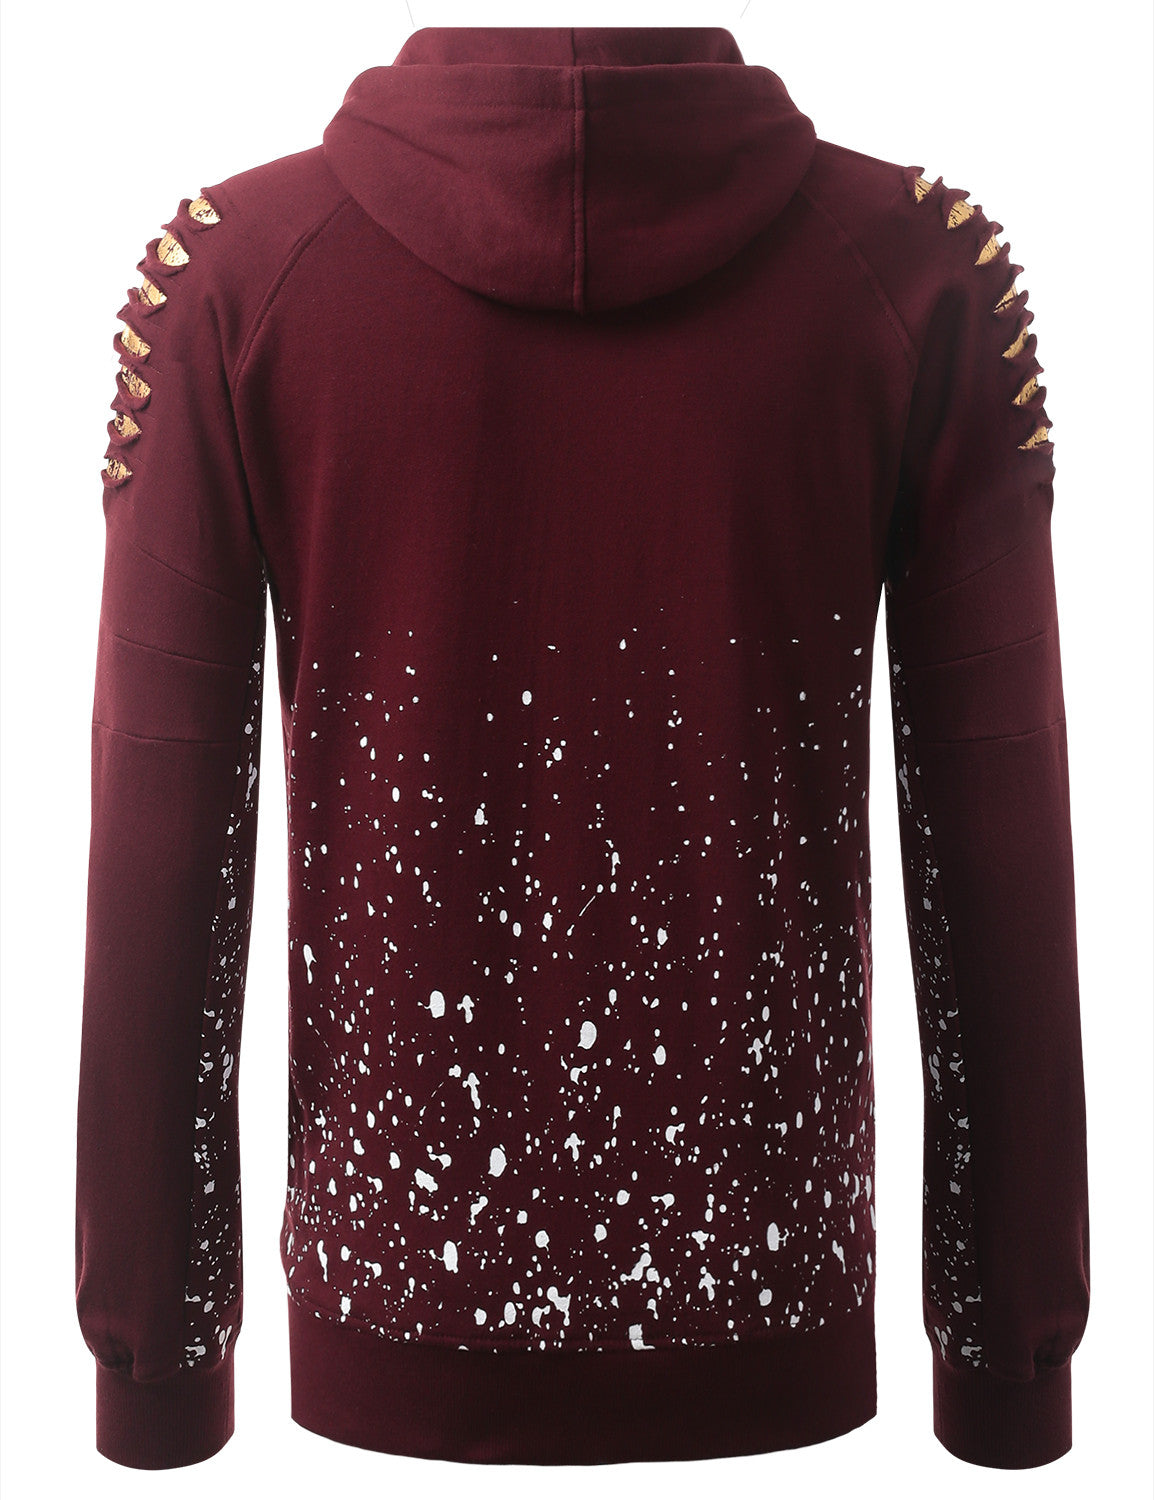 BURGUNDY Bull Splatter Long-Sleeve Hoodie Jackets - URBANCREWS